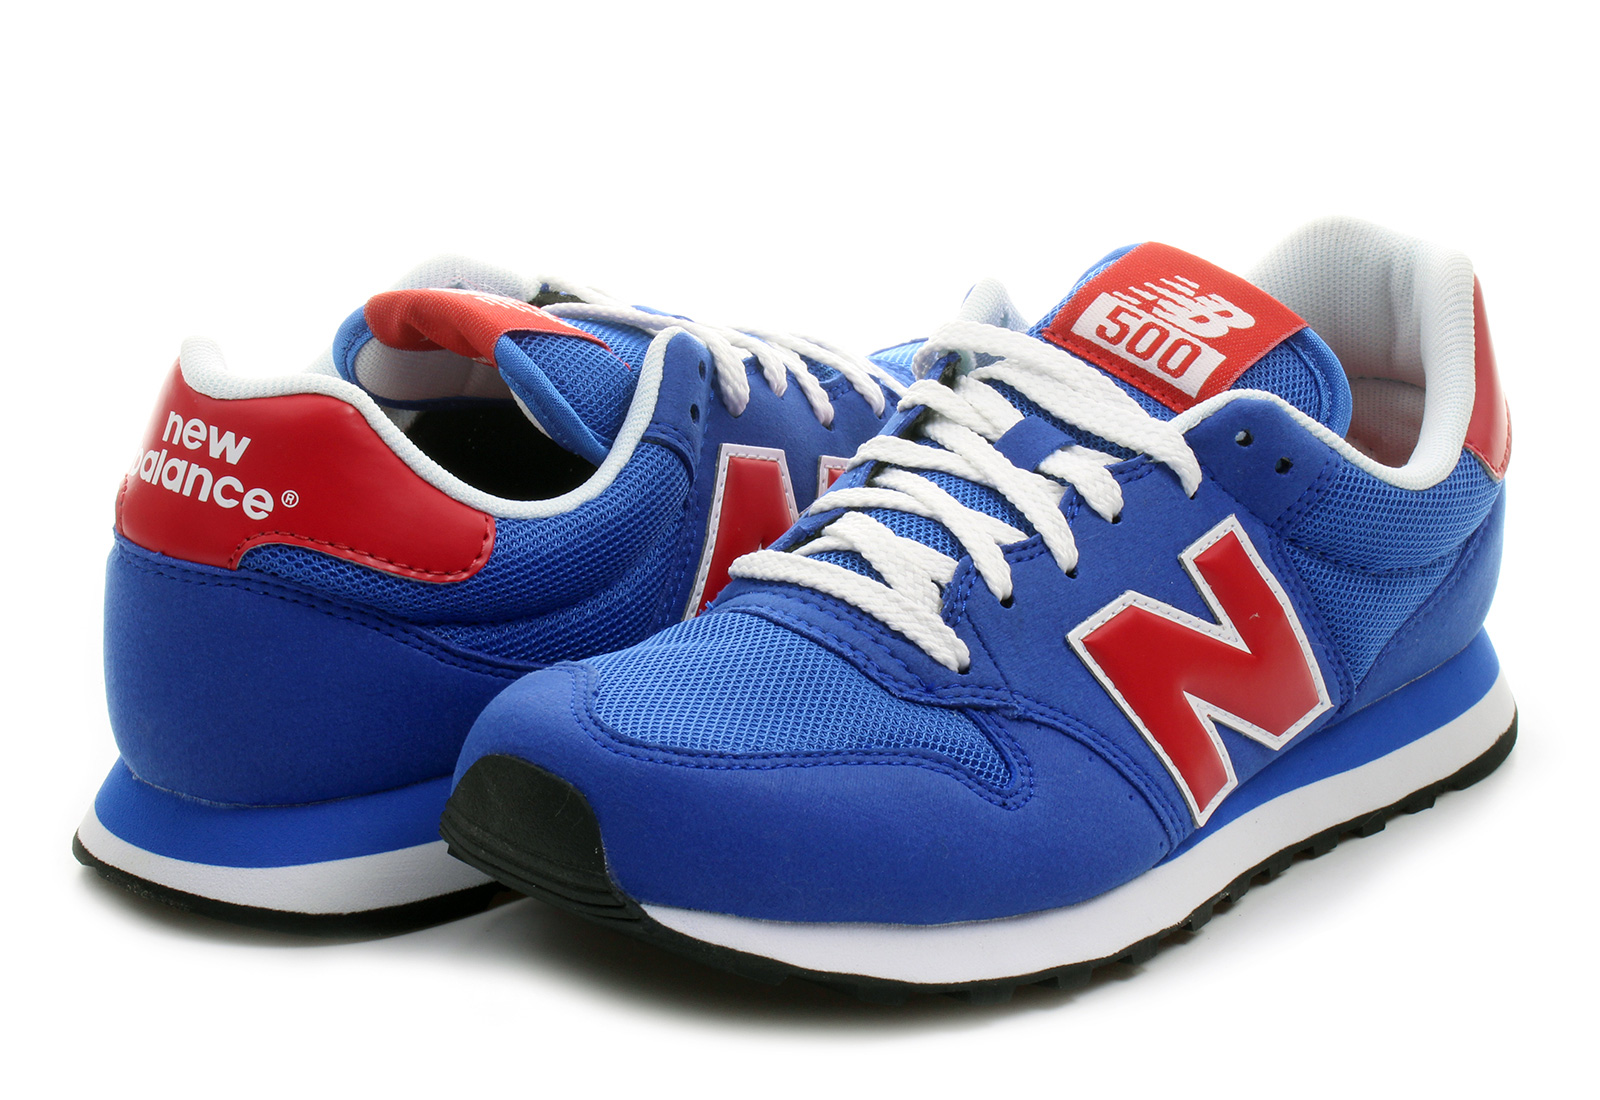 New Balance White Velcro Shoes